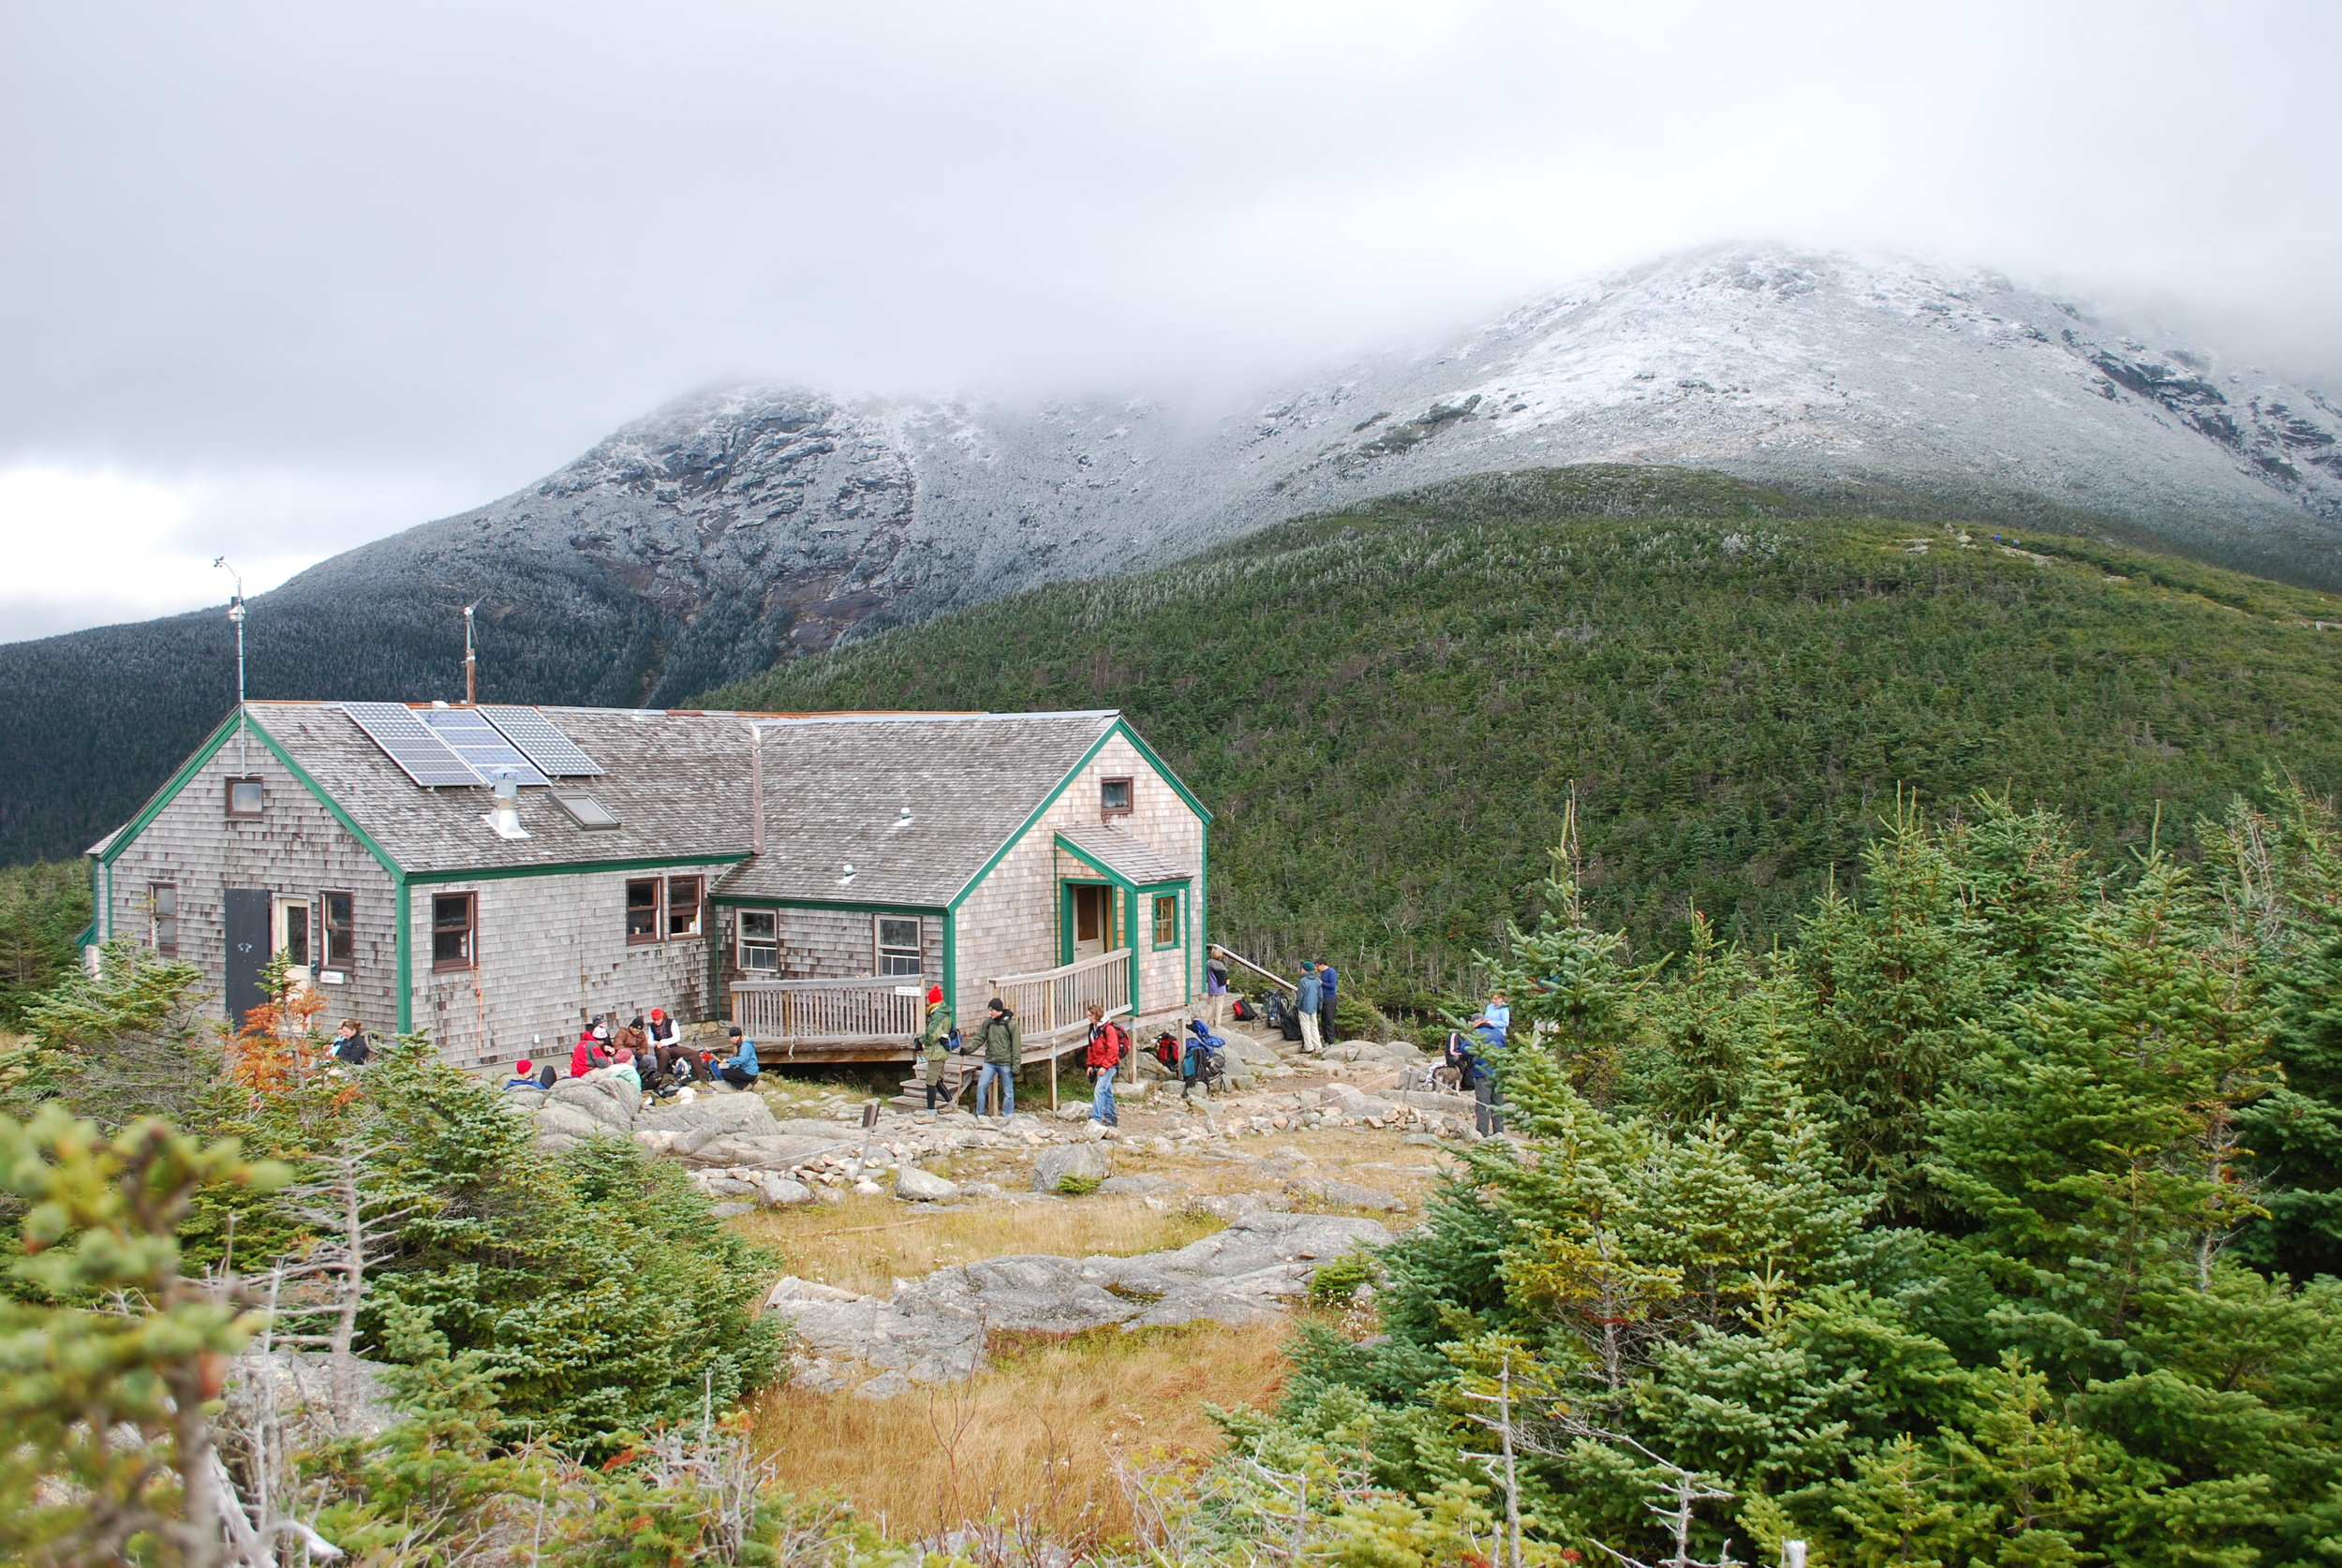 Greenleaf Hut, New Hampshire. Image by Jeff Edwards